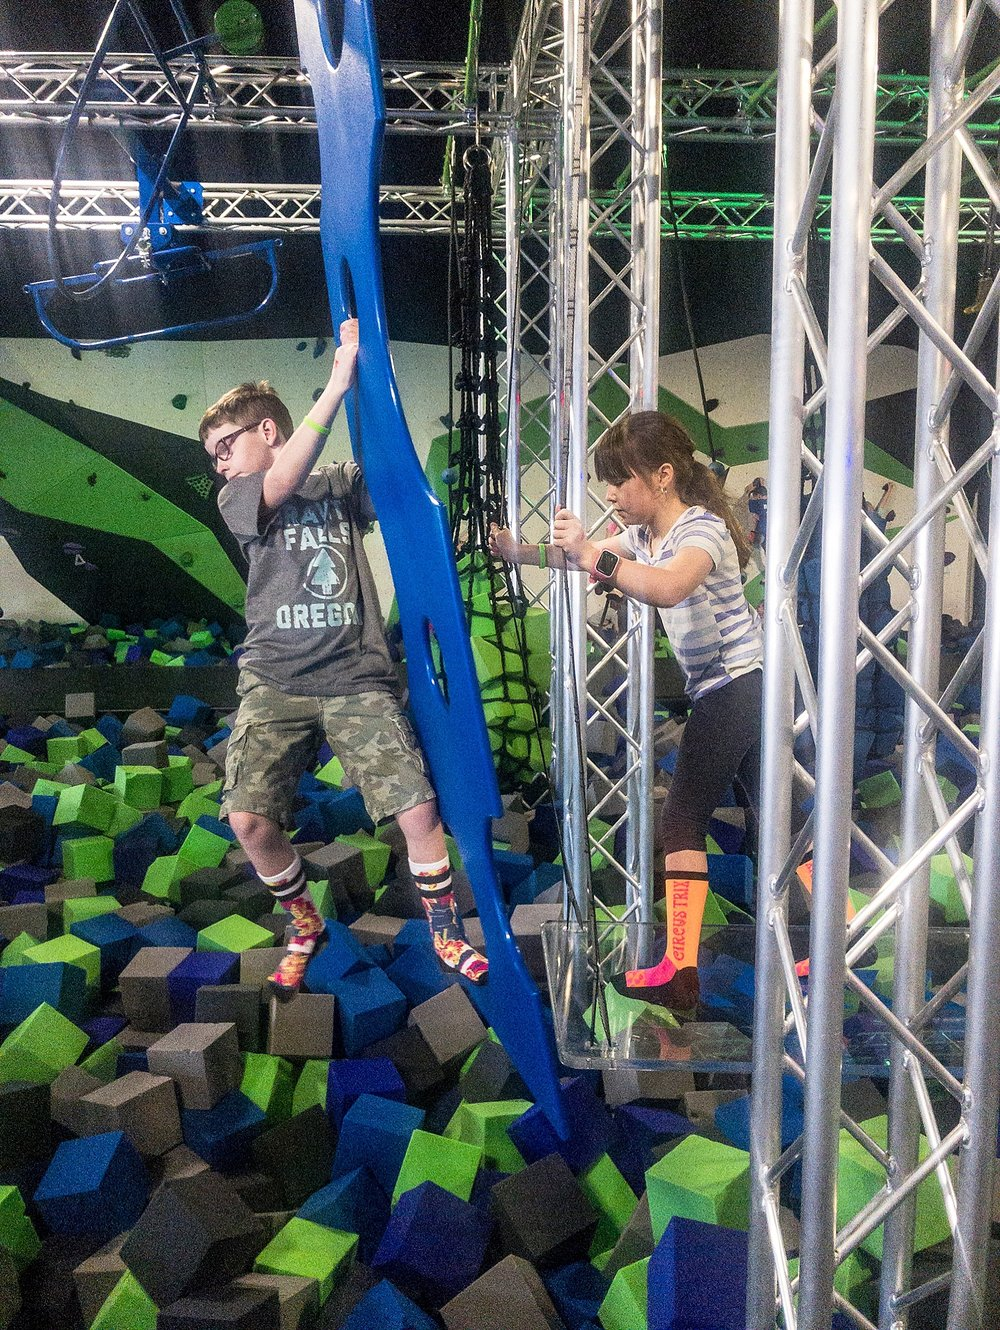 We went to Spider Monkey for the first time in this installment of our Week in the Life of an Unschooler!